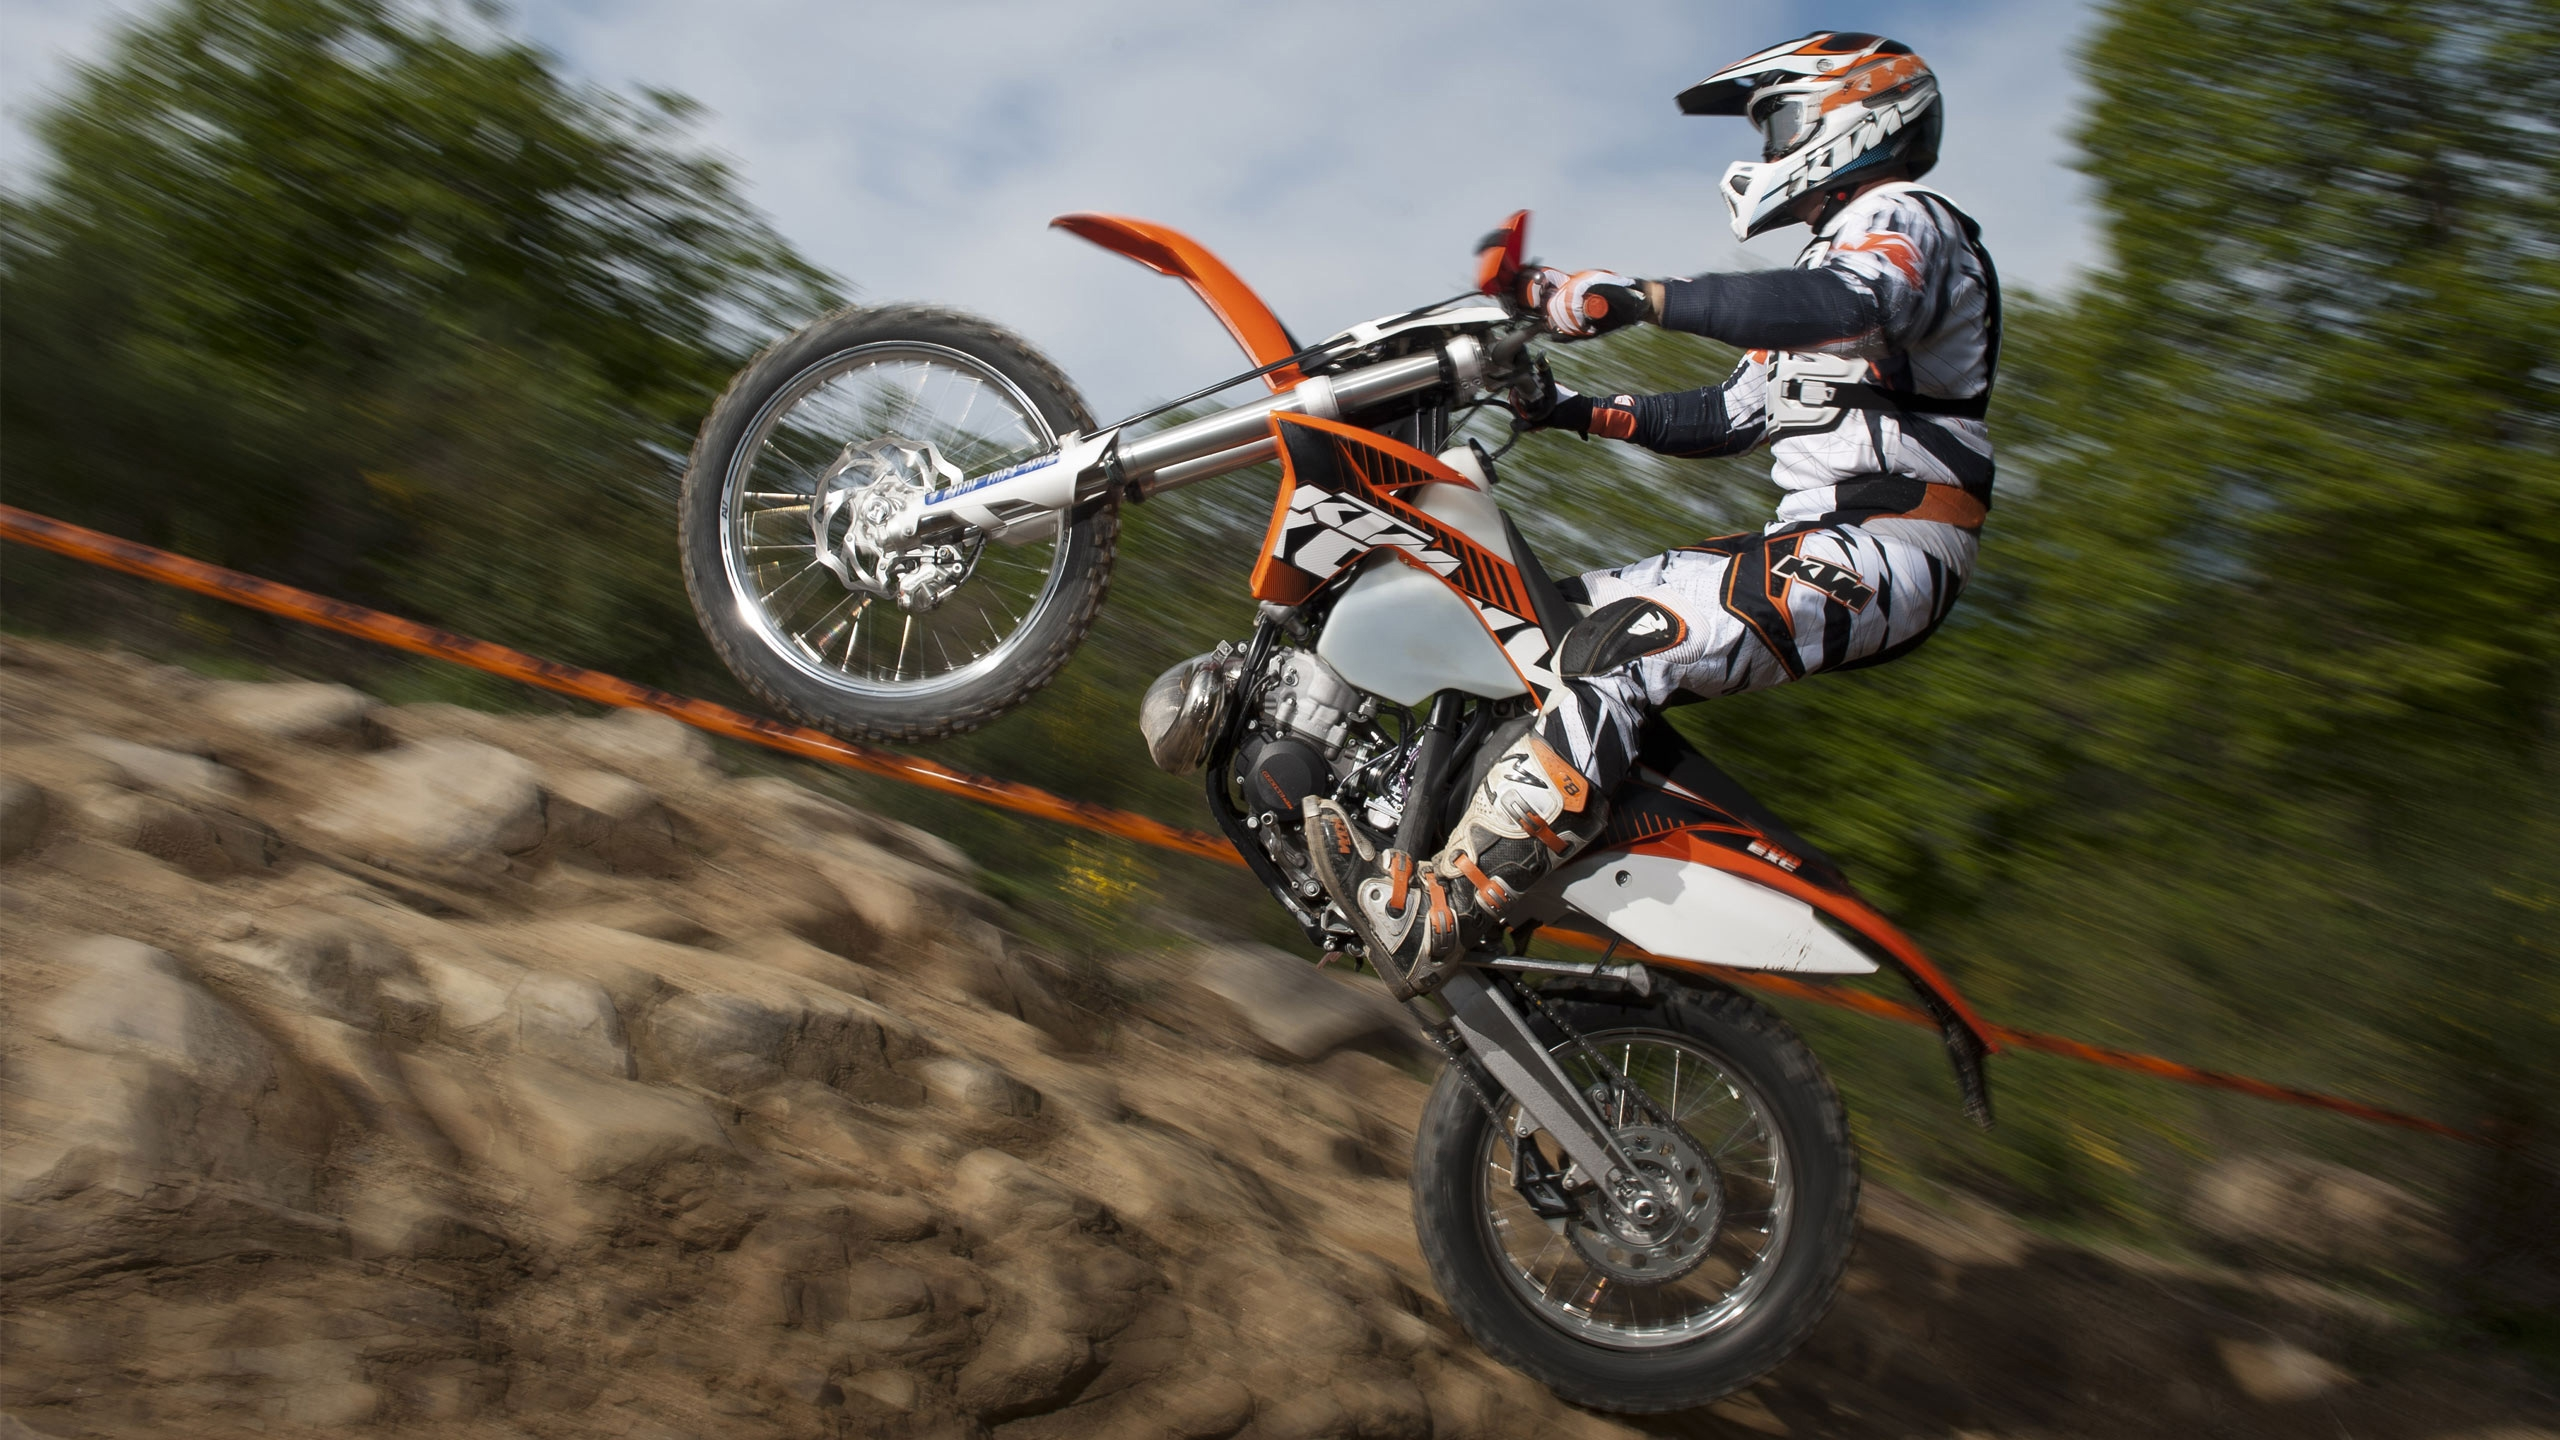 Motocross Rider Wallpaper Background 2189 2606 Wallpaper High 2560x1440